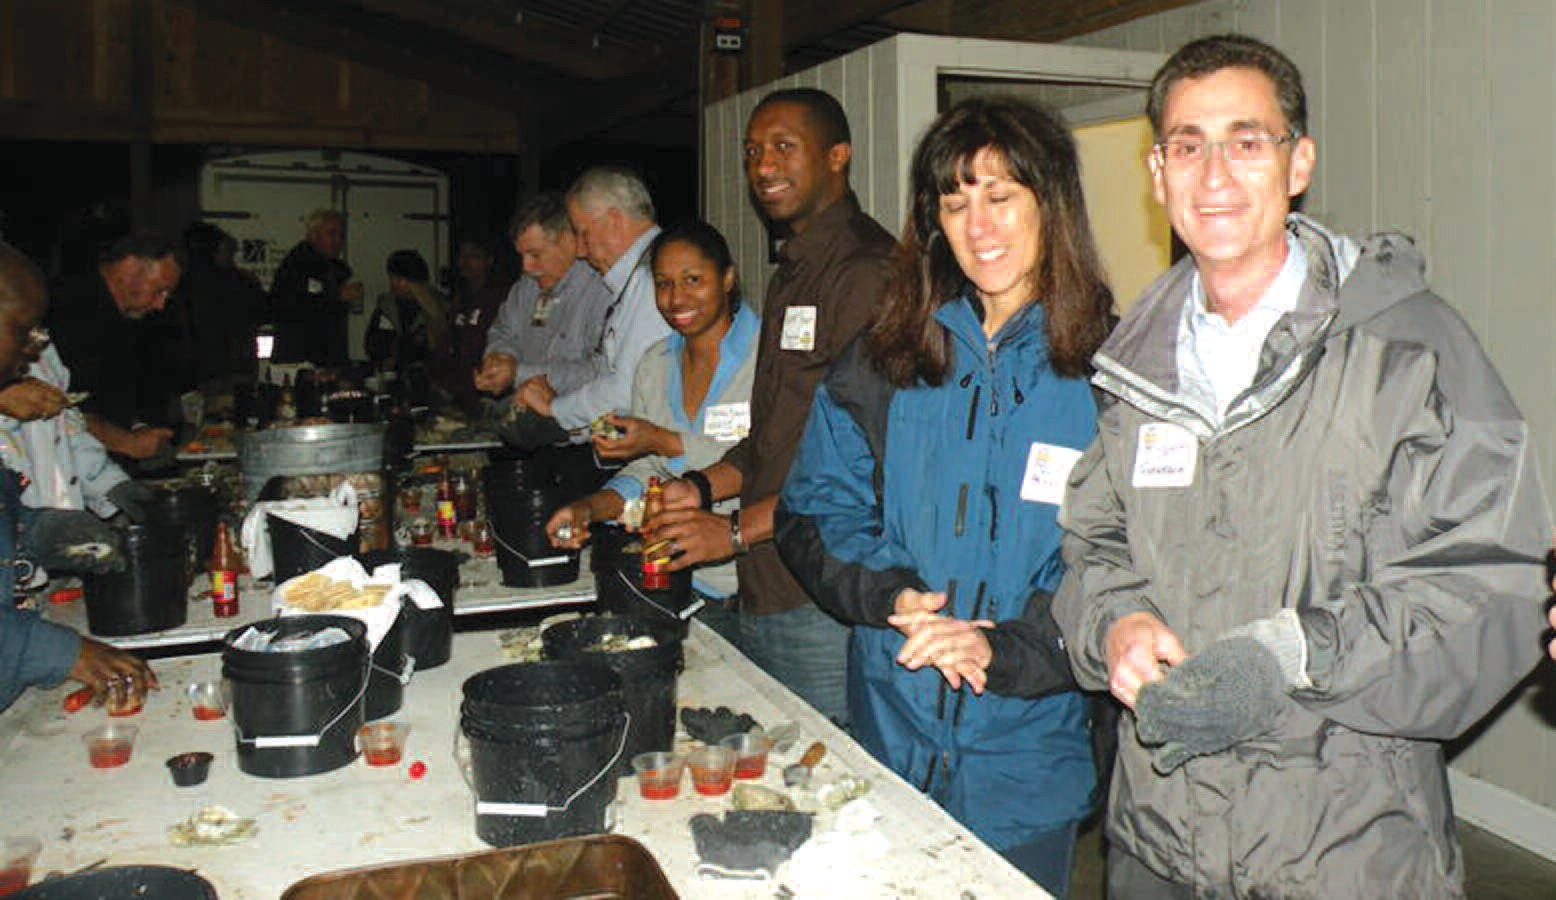 Chamber Chairman Bert Tennebaum shown with others in attendance at the Chamber's Annual Oyster Roast.